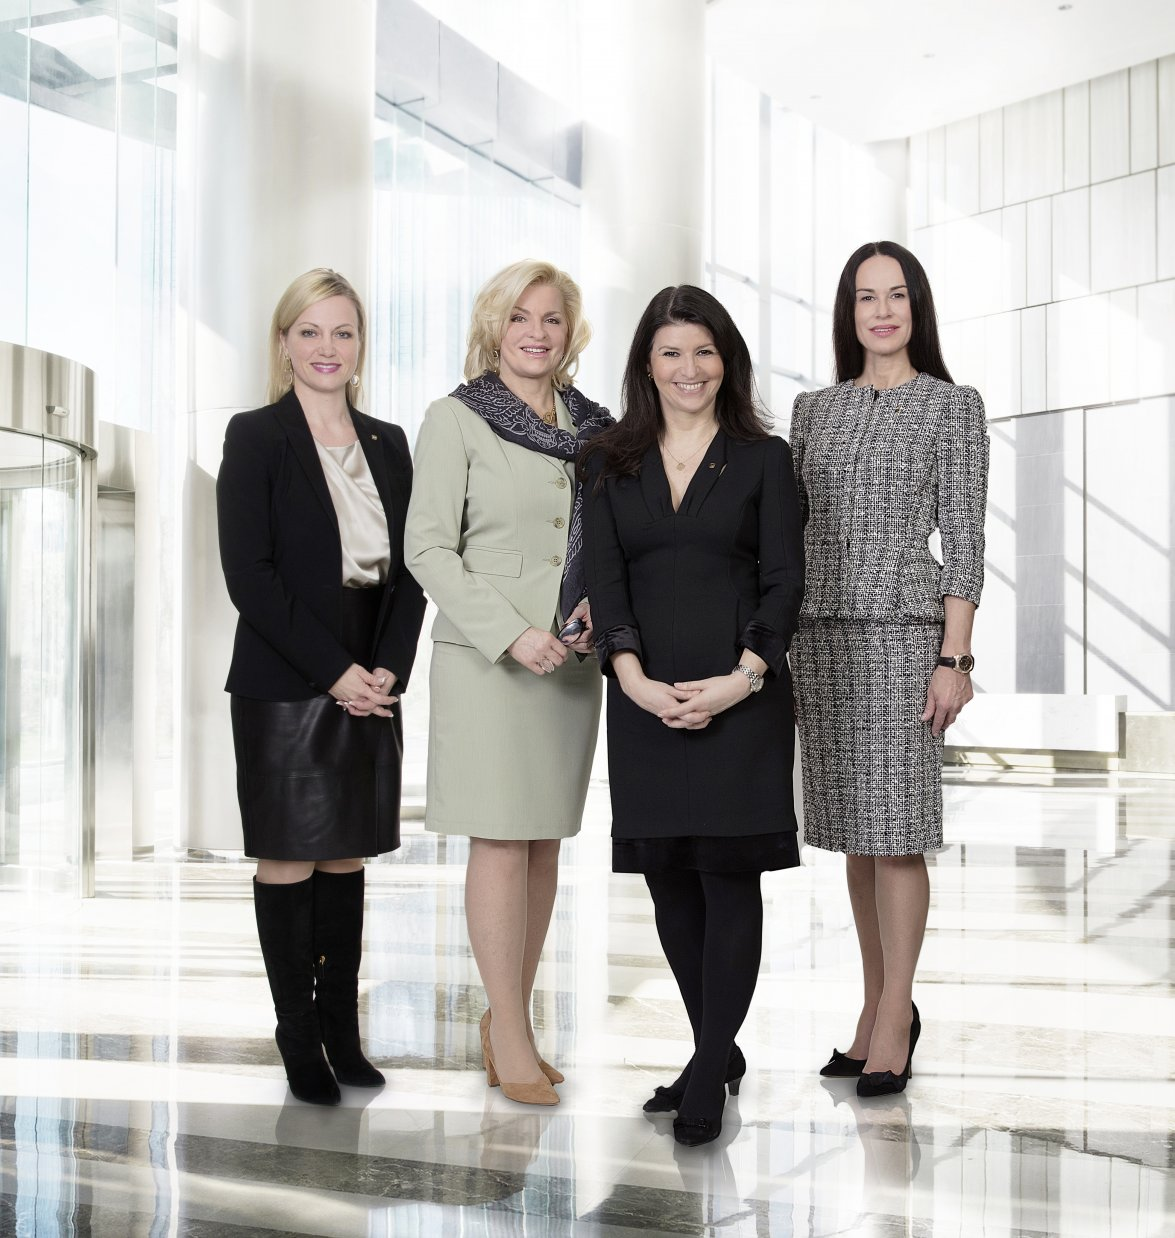 CEO ADMIRAL Casinos & Entertainment AG Dr. Monika Racek with the Members of the Supervisory Board Barbara Feldmann, Martina Flitsch and Martina Kurz